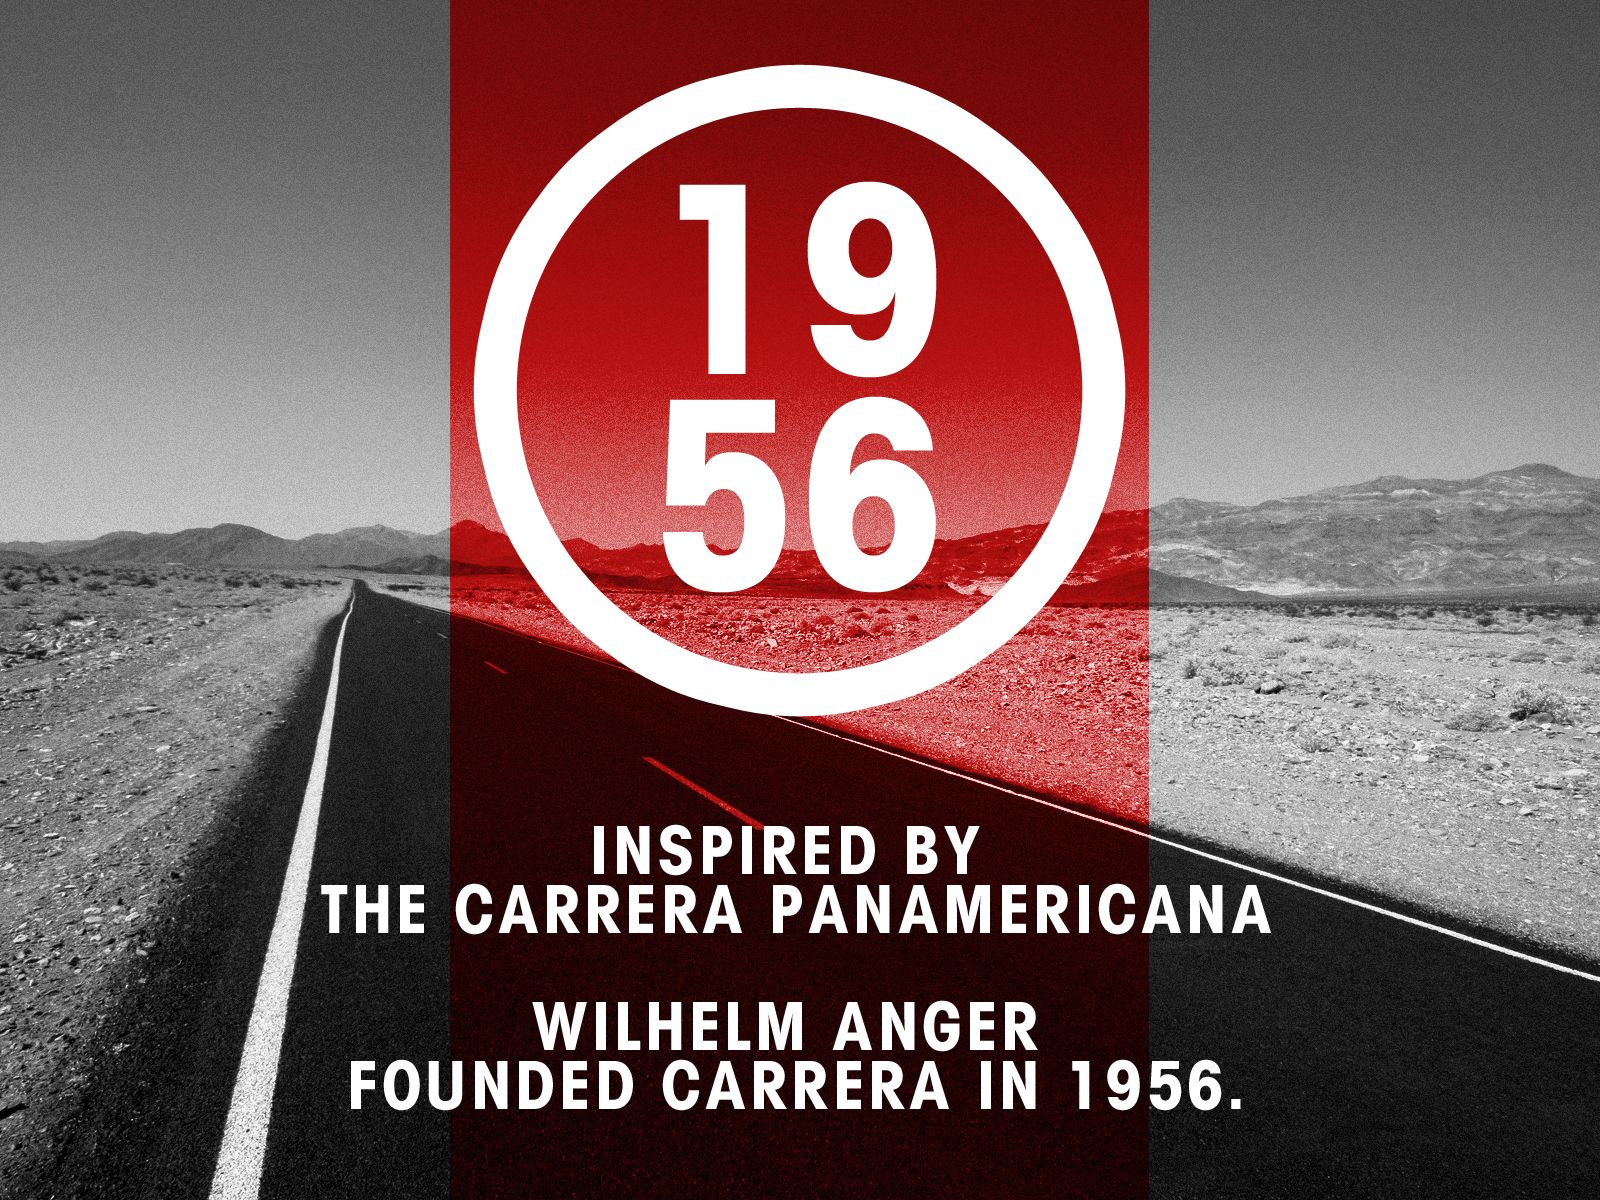 Carrera was founded by Wilhelm Anger in 1956, who was inspired by the longest, fastest and most dangerous race in the world, the Carrera Panamericana.